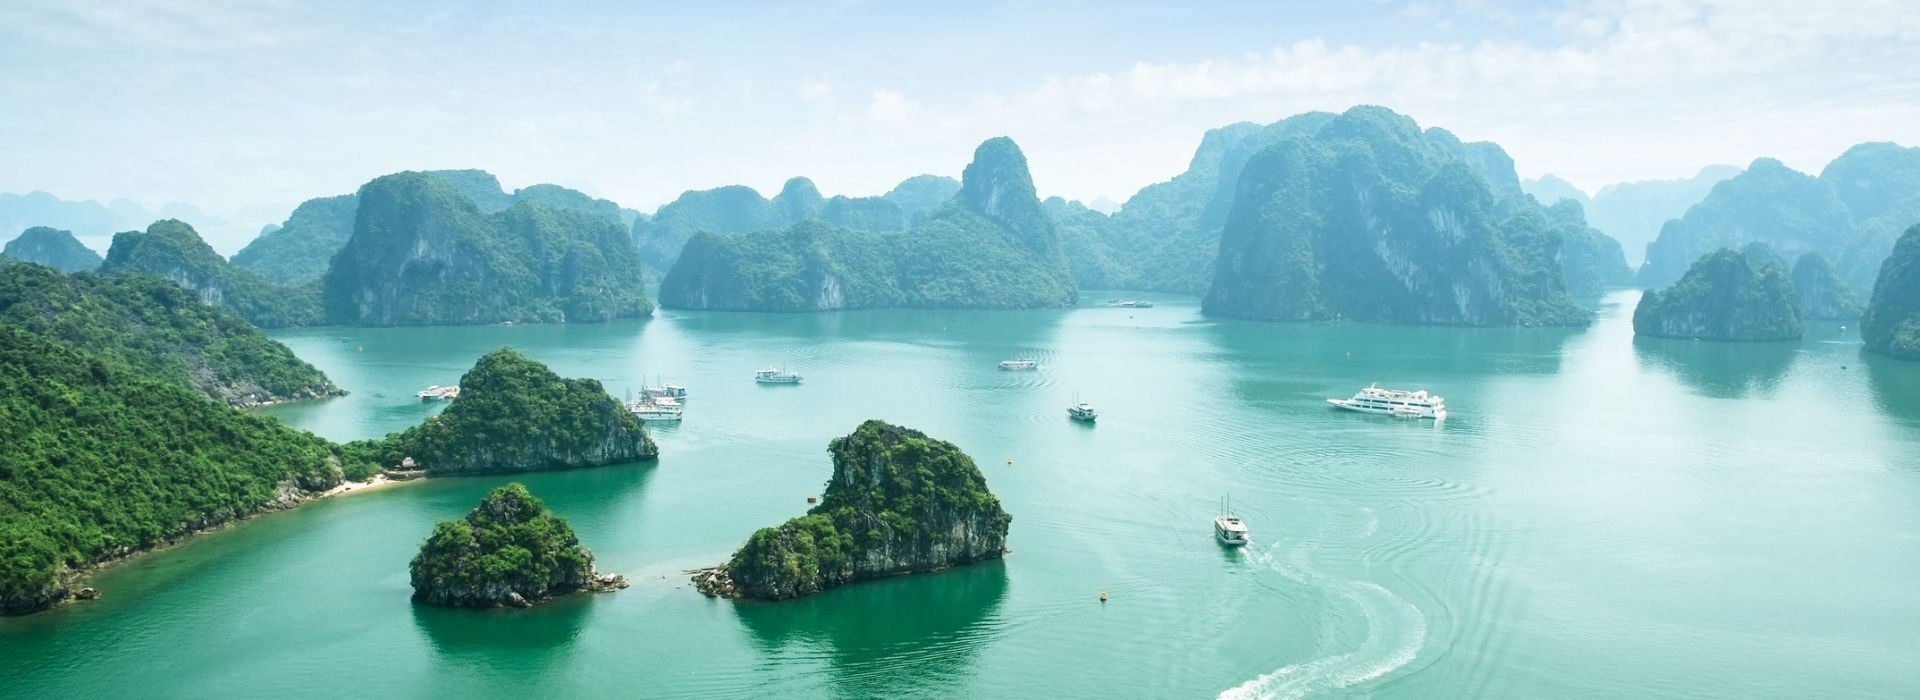 Sightseeing, attractions, culture and history Tours in Hanoi